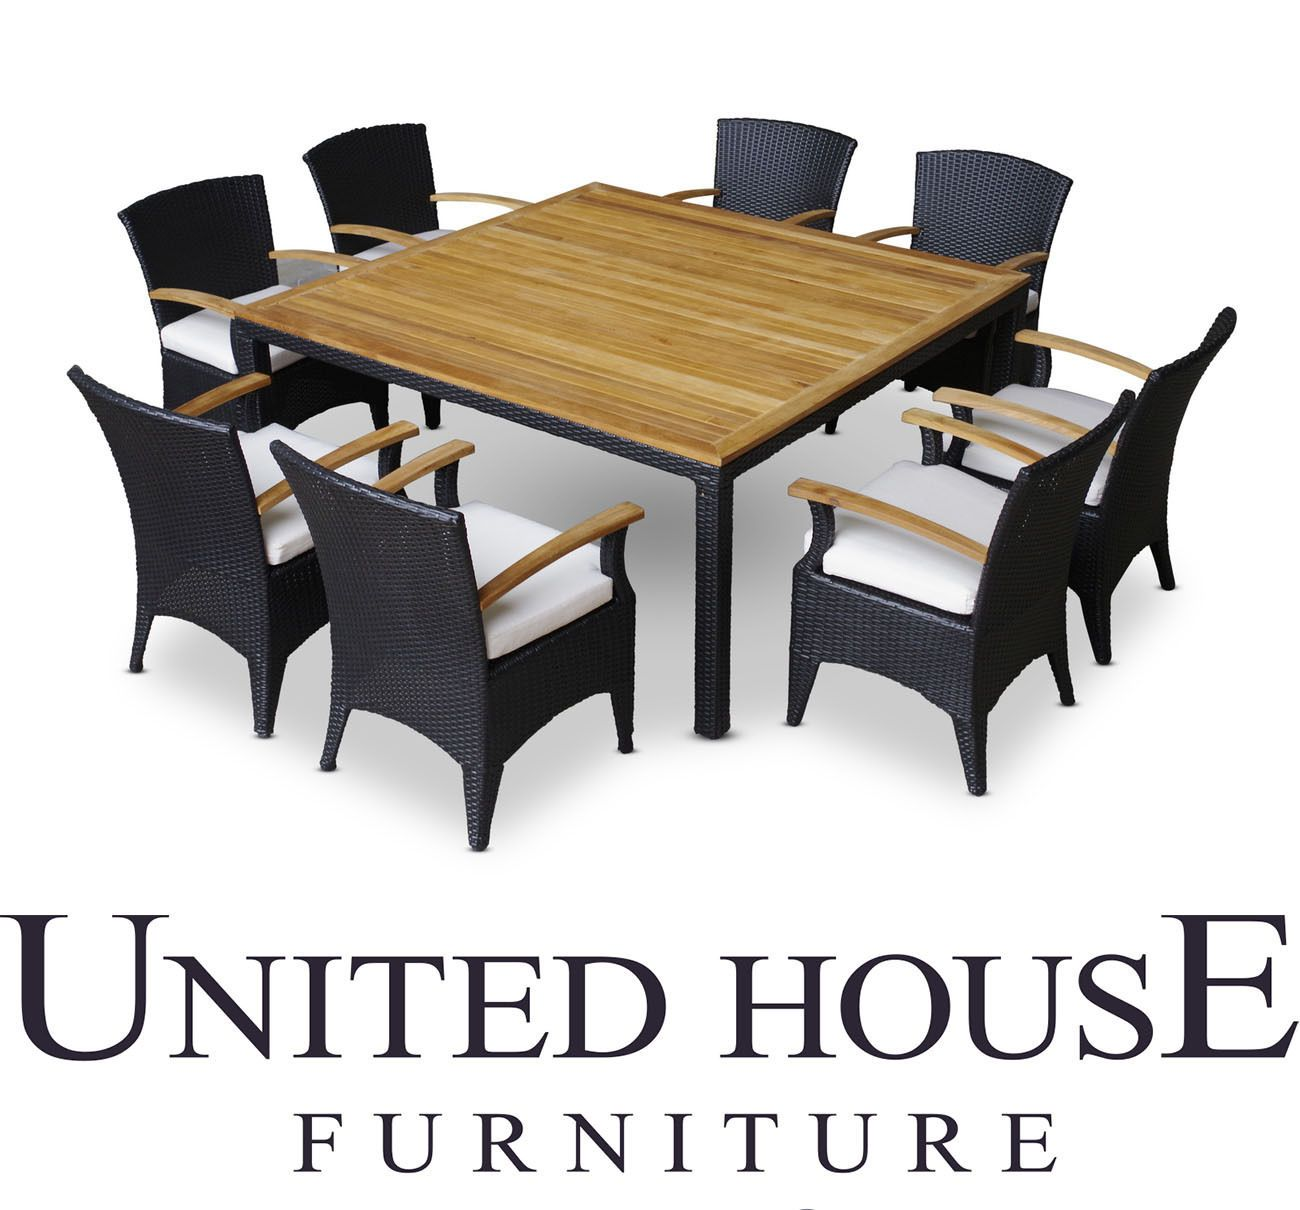 Outdoor Wicker Teak Timber Square 8 Seater Dining Table Chairs Furniture Setting Mesas Comedor